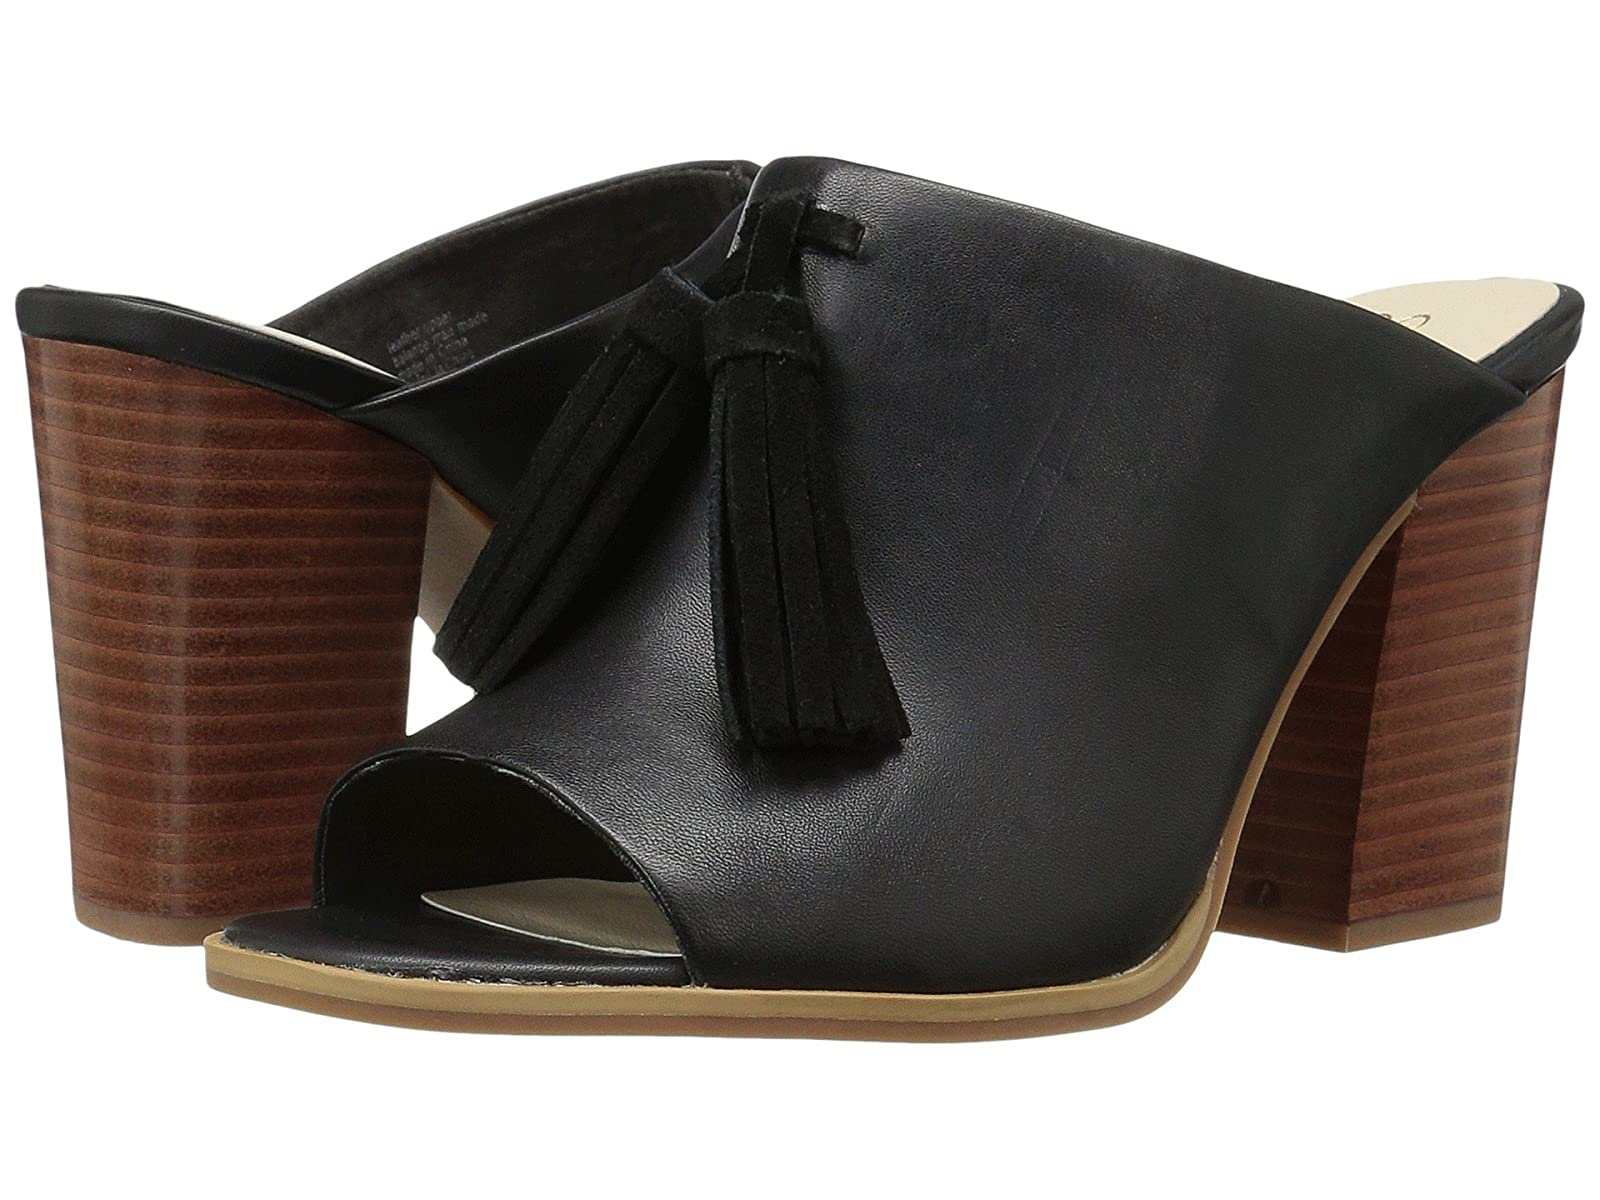 Seychelles Under The MoonCheap and distinctive eye-catching shoes